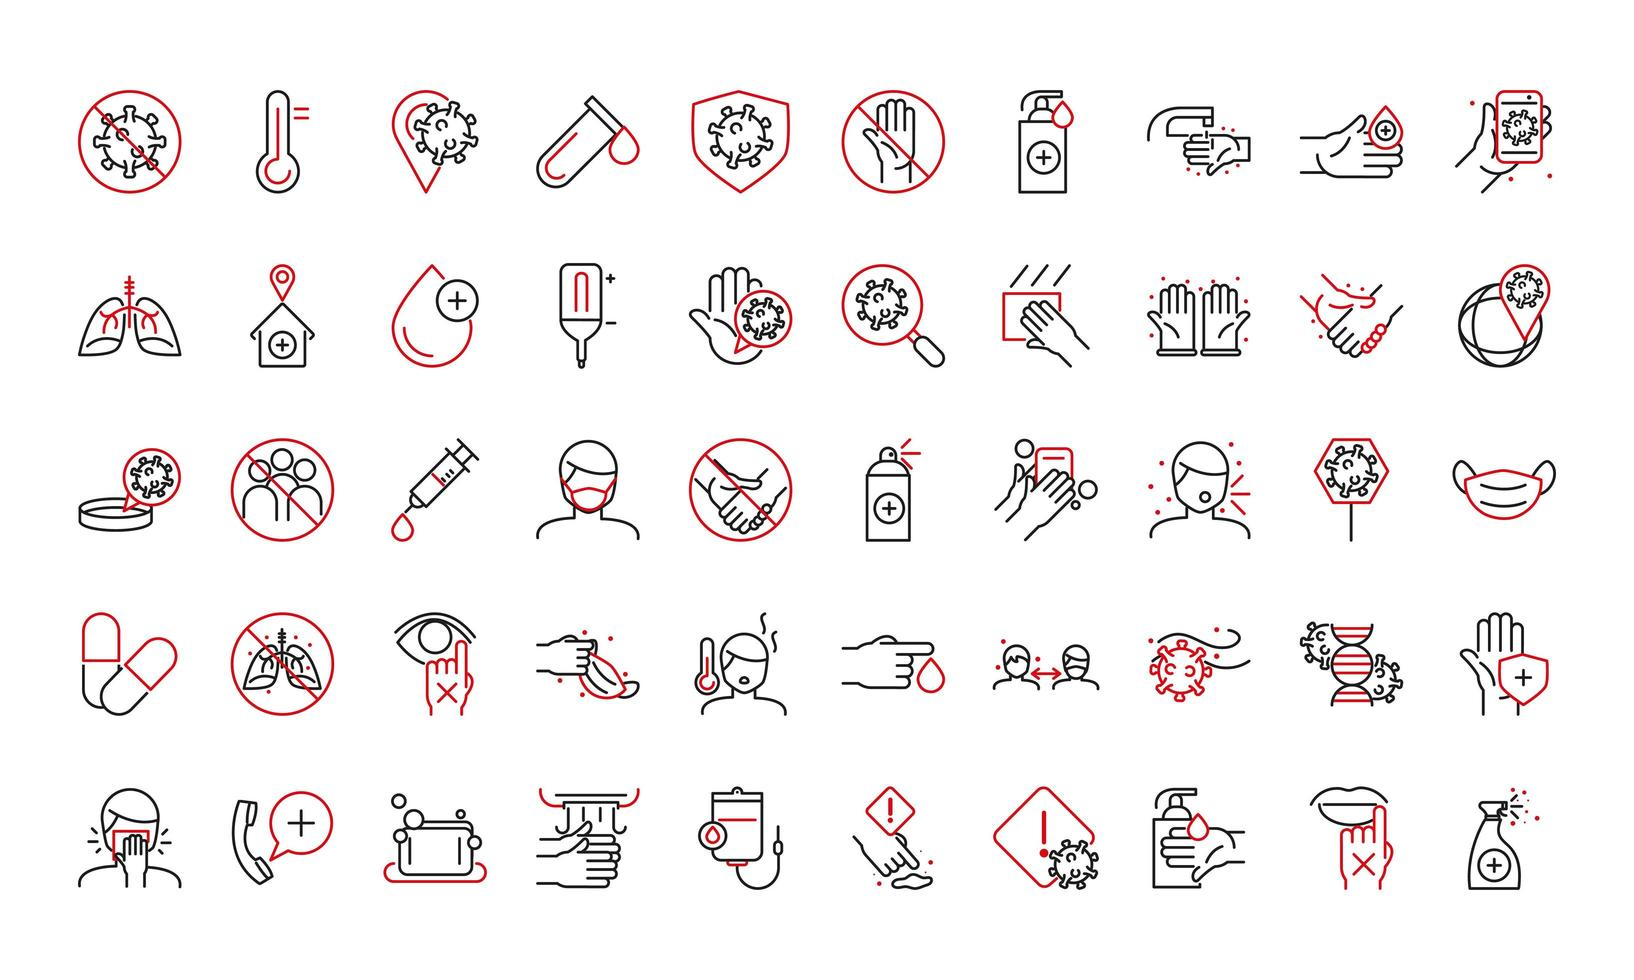 Health care instructions for covid-19 bi-color icon set  vector